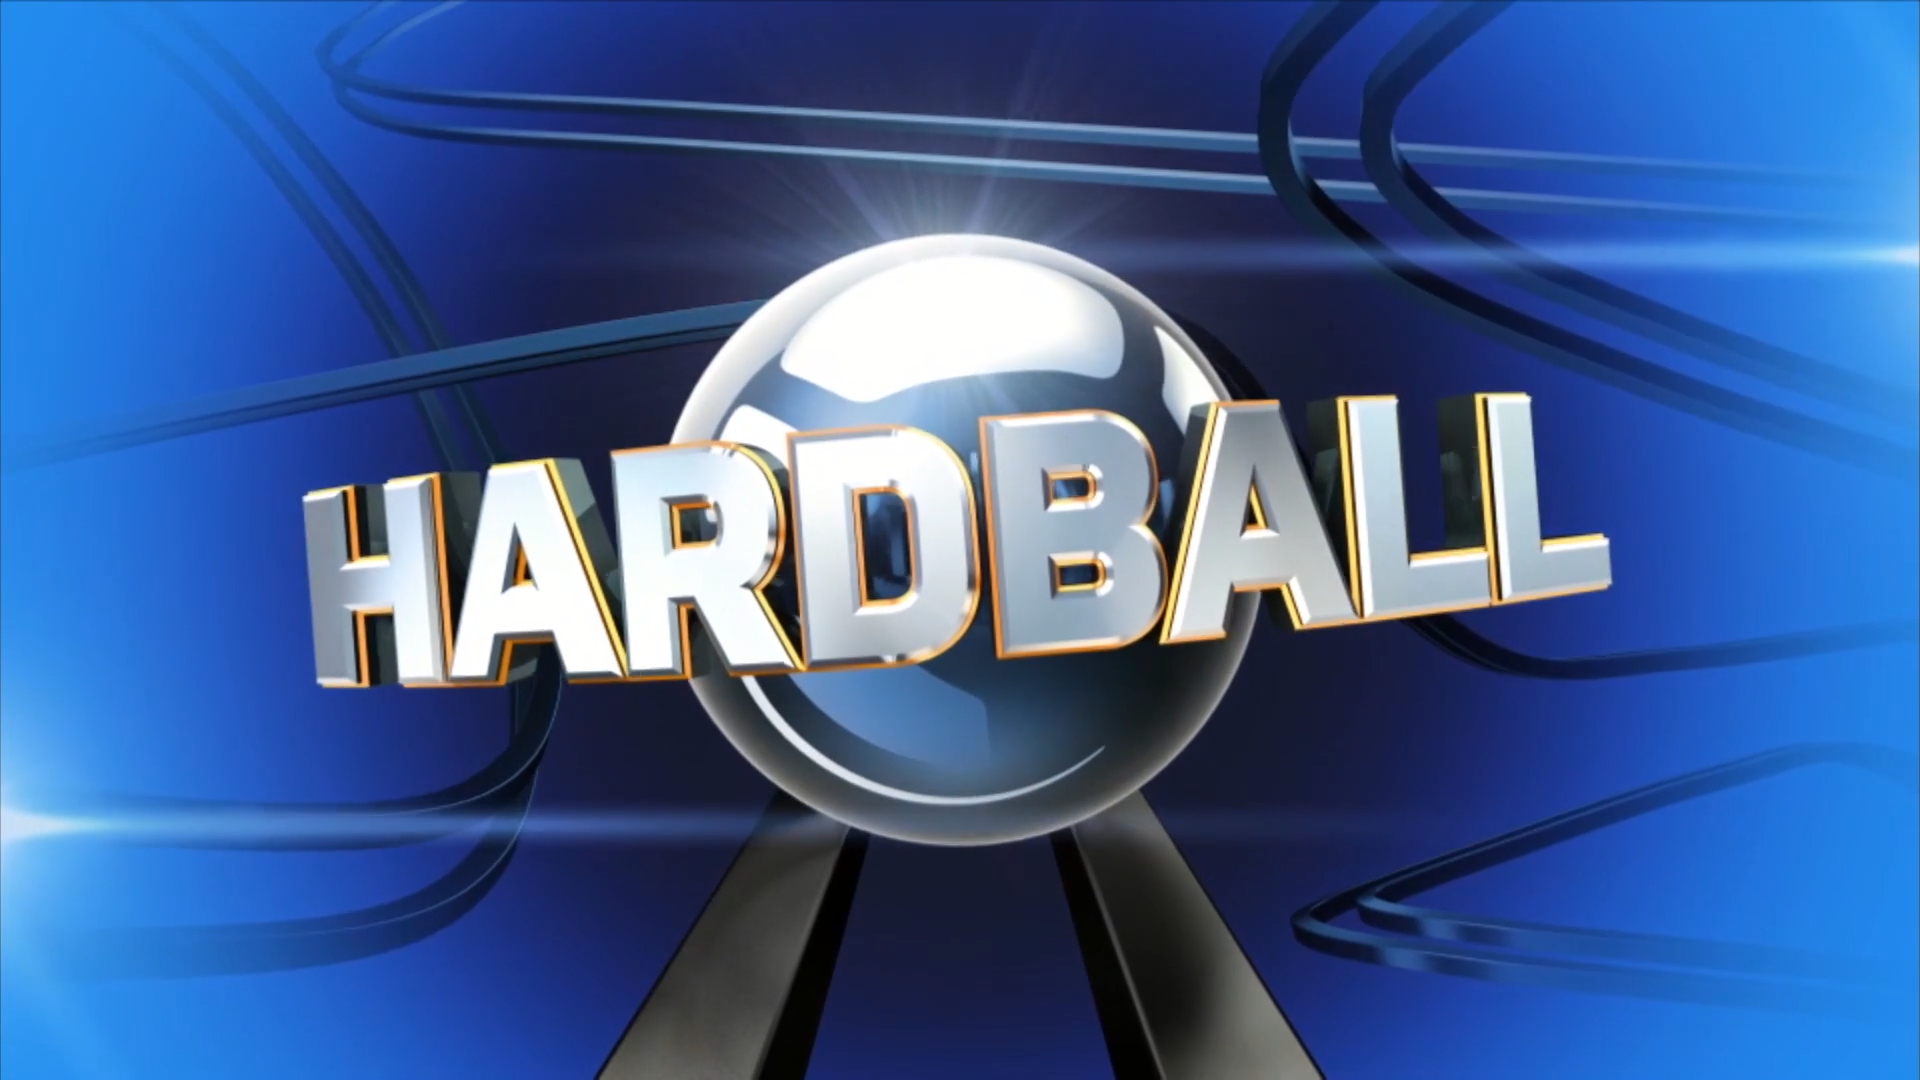 Hardball (UK Gameshow)